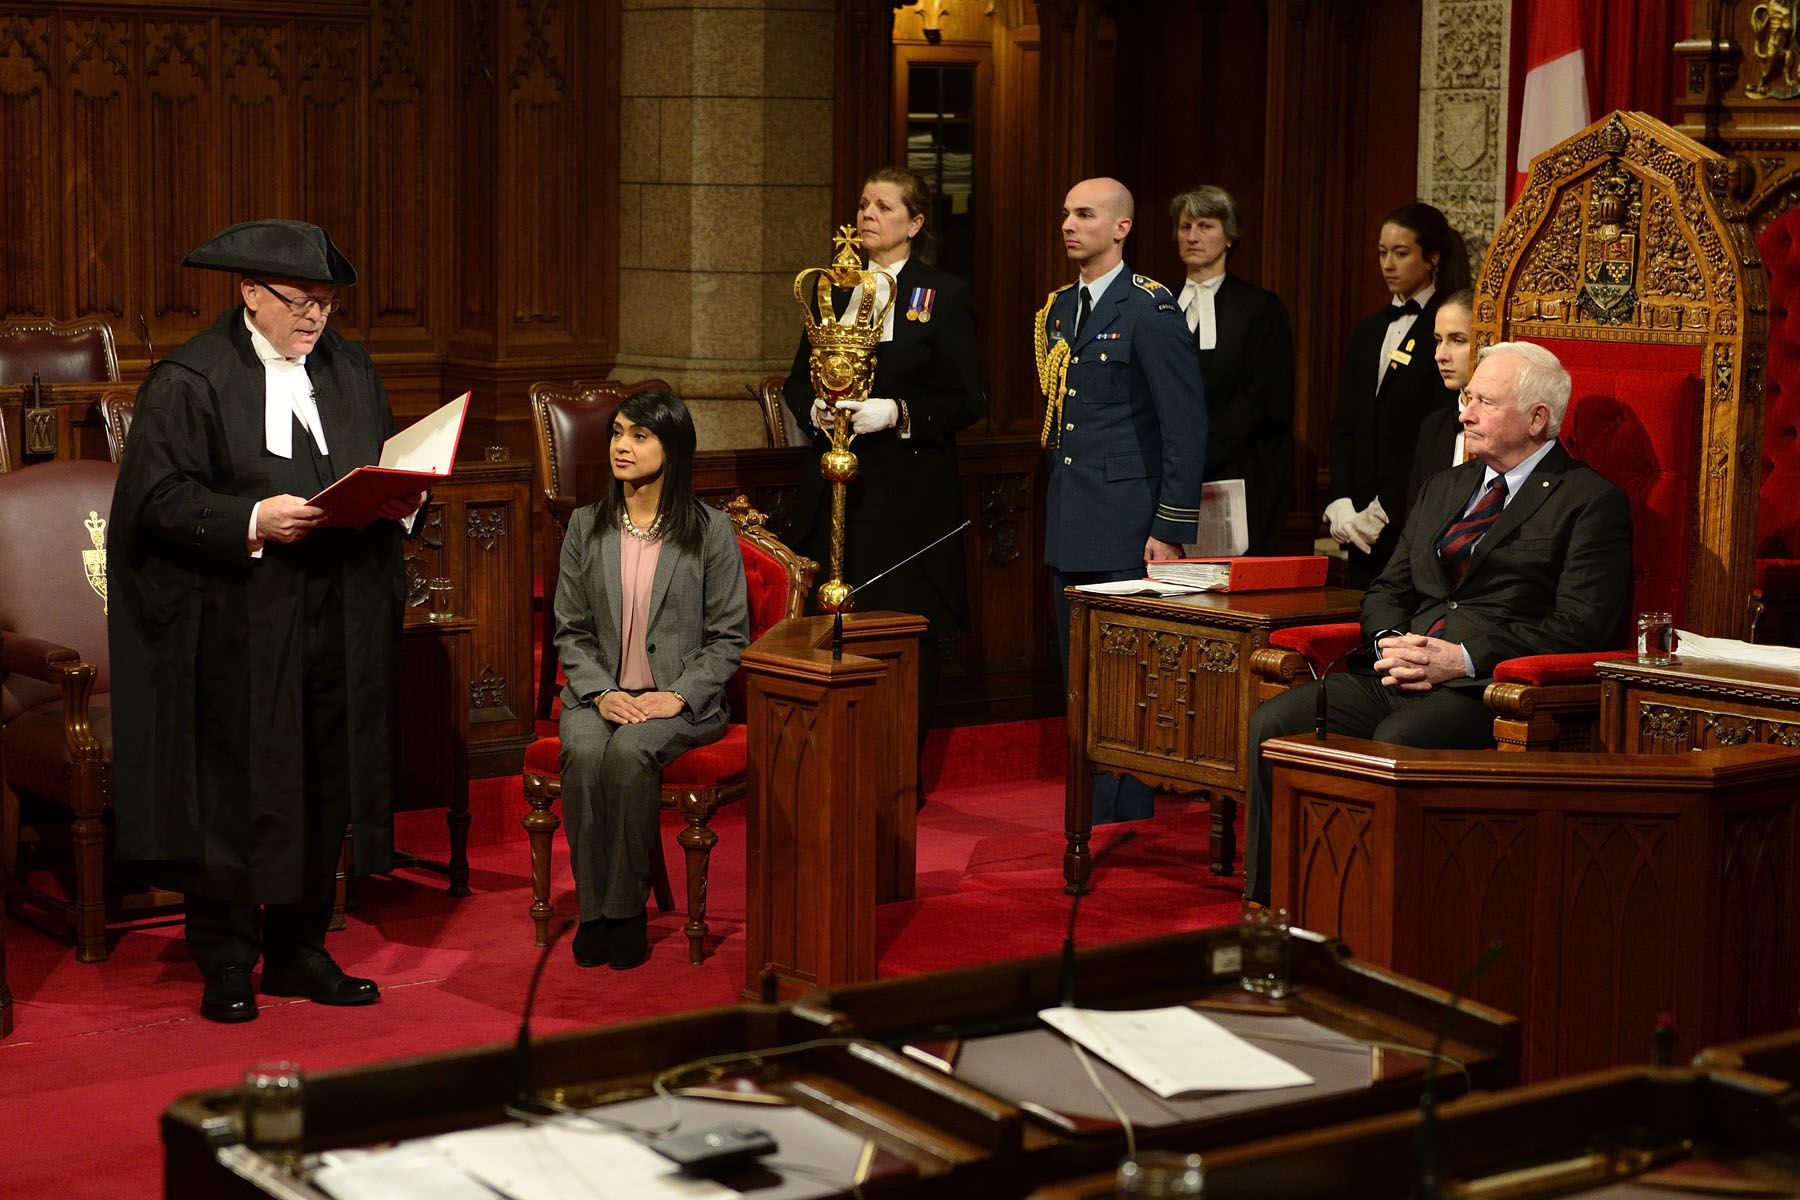 On December 12, 2016, the Governor General granted royal assent to bills during a formal ceremony in the Senate Chamber.